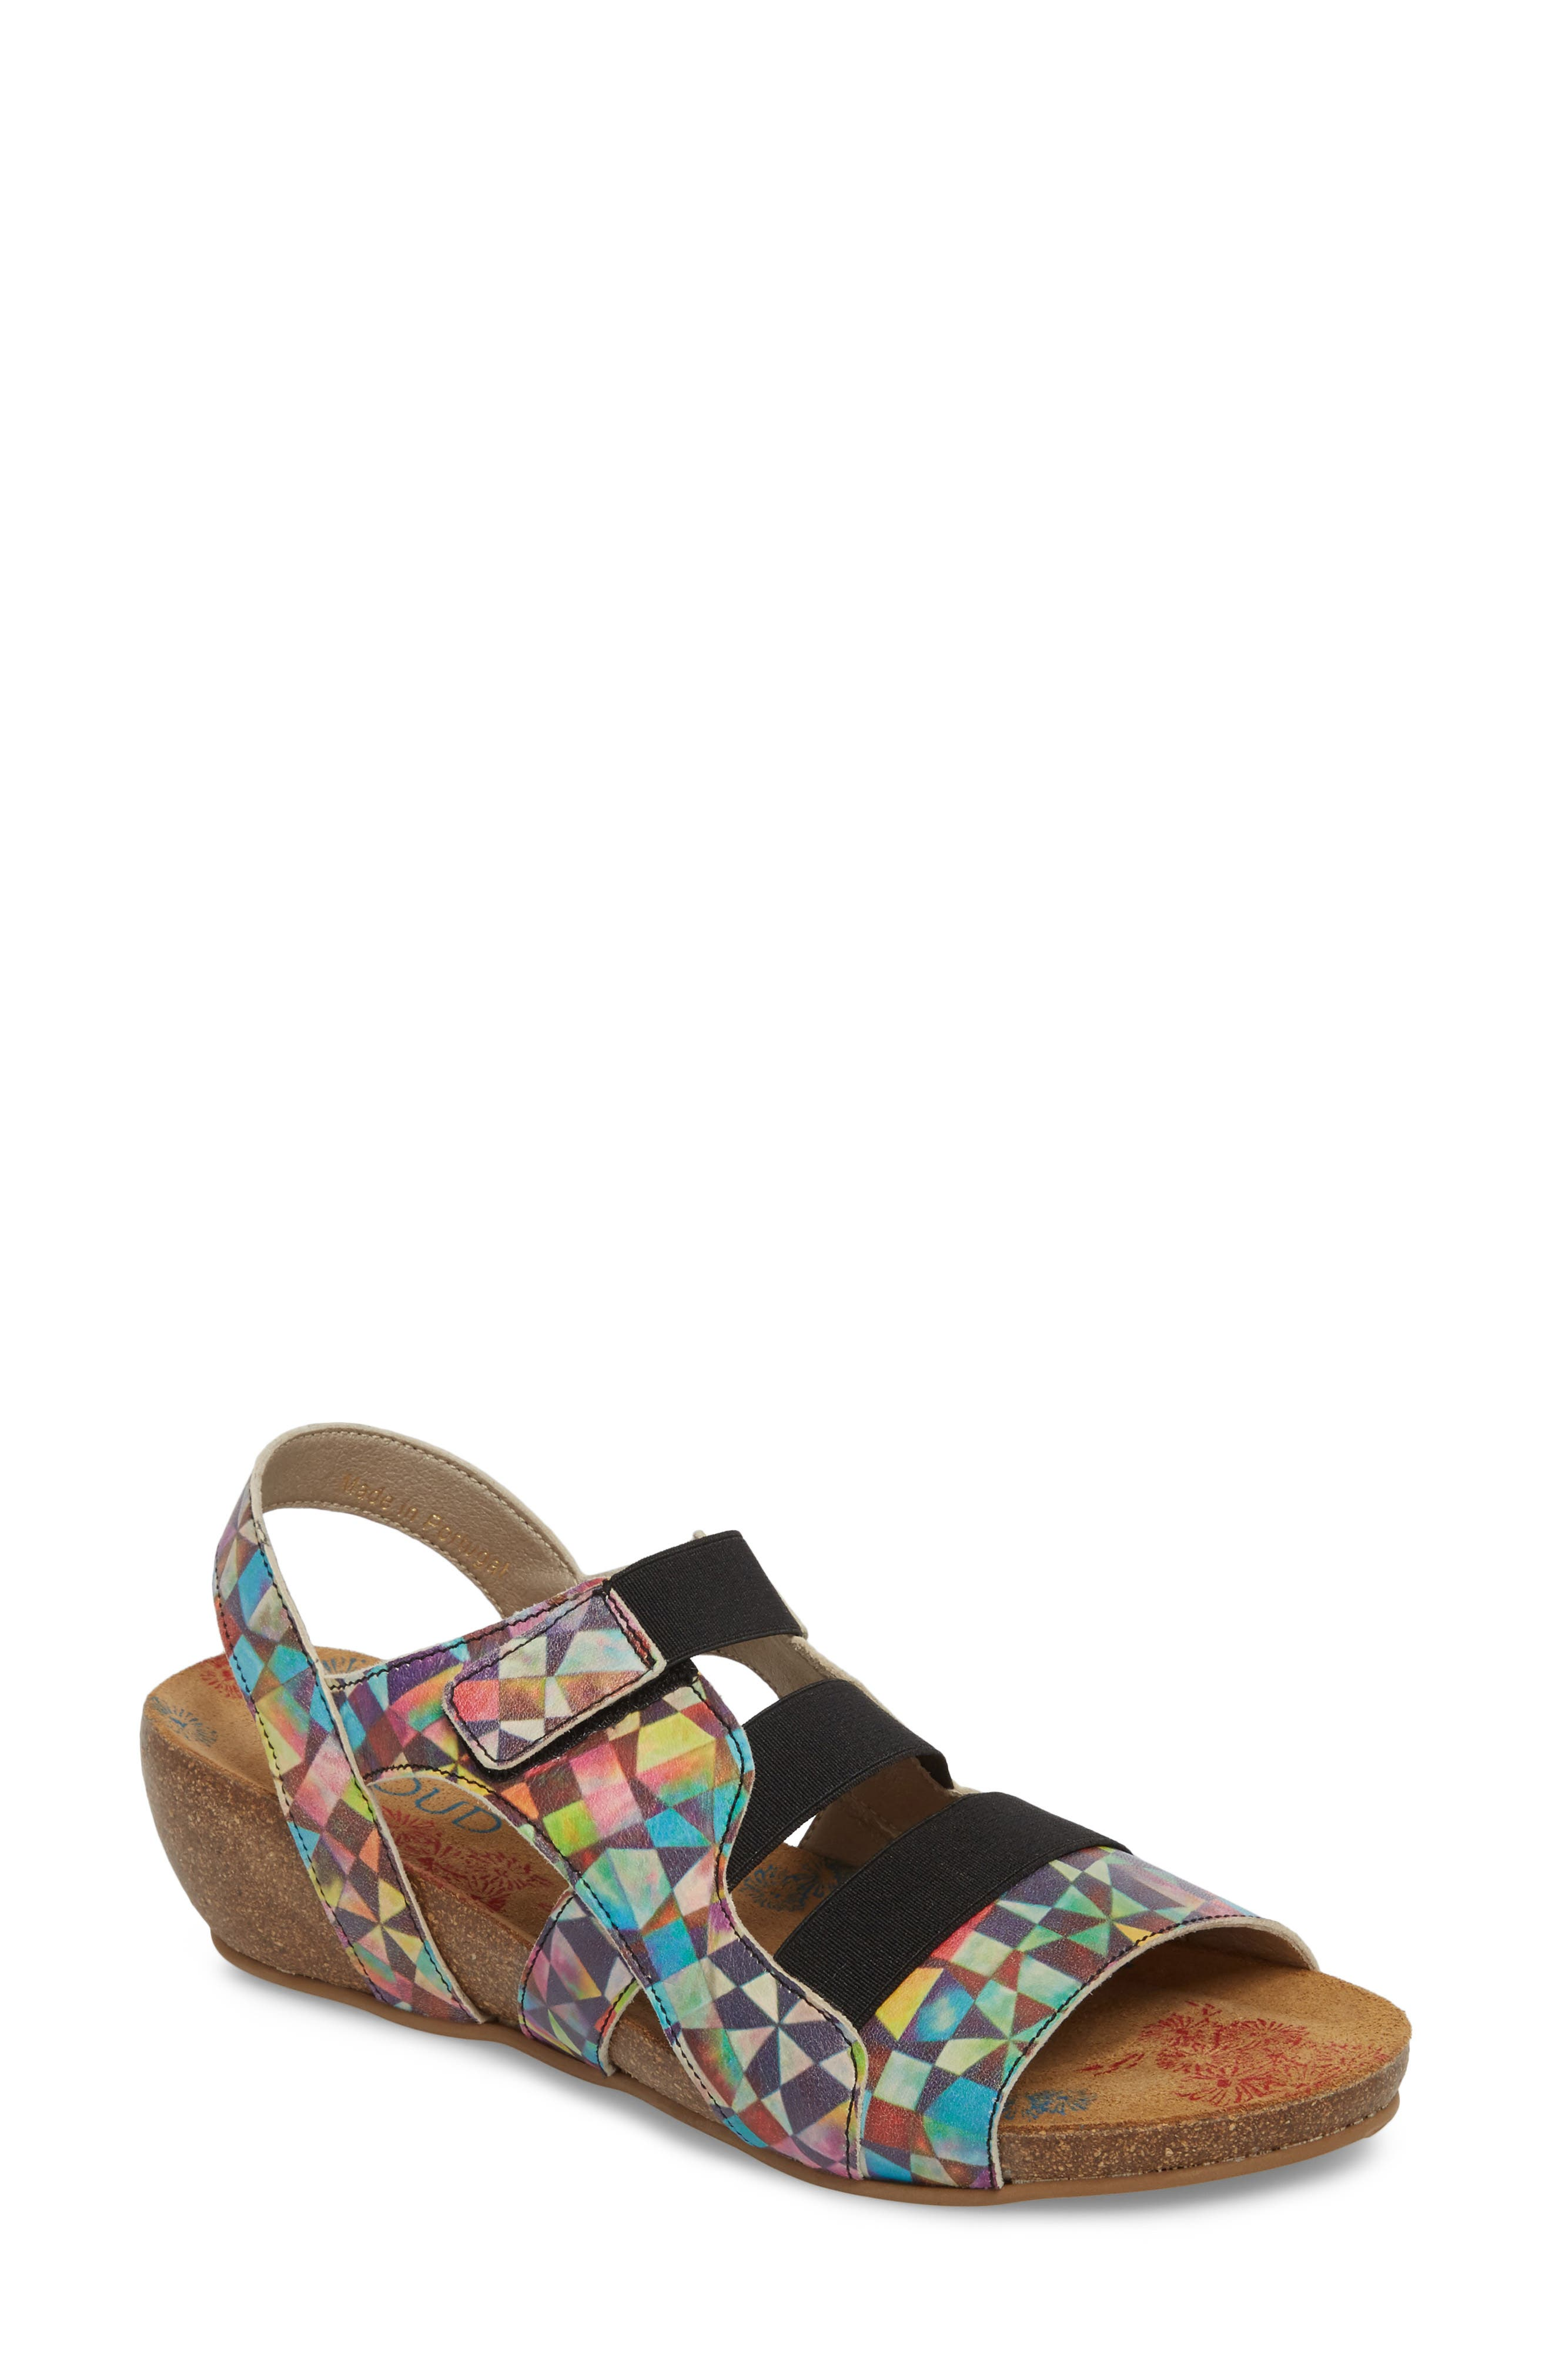 Duffy Wedge Sandal,                             Main thumbnail 1, color,                             Mystere Leather